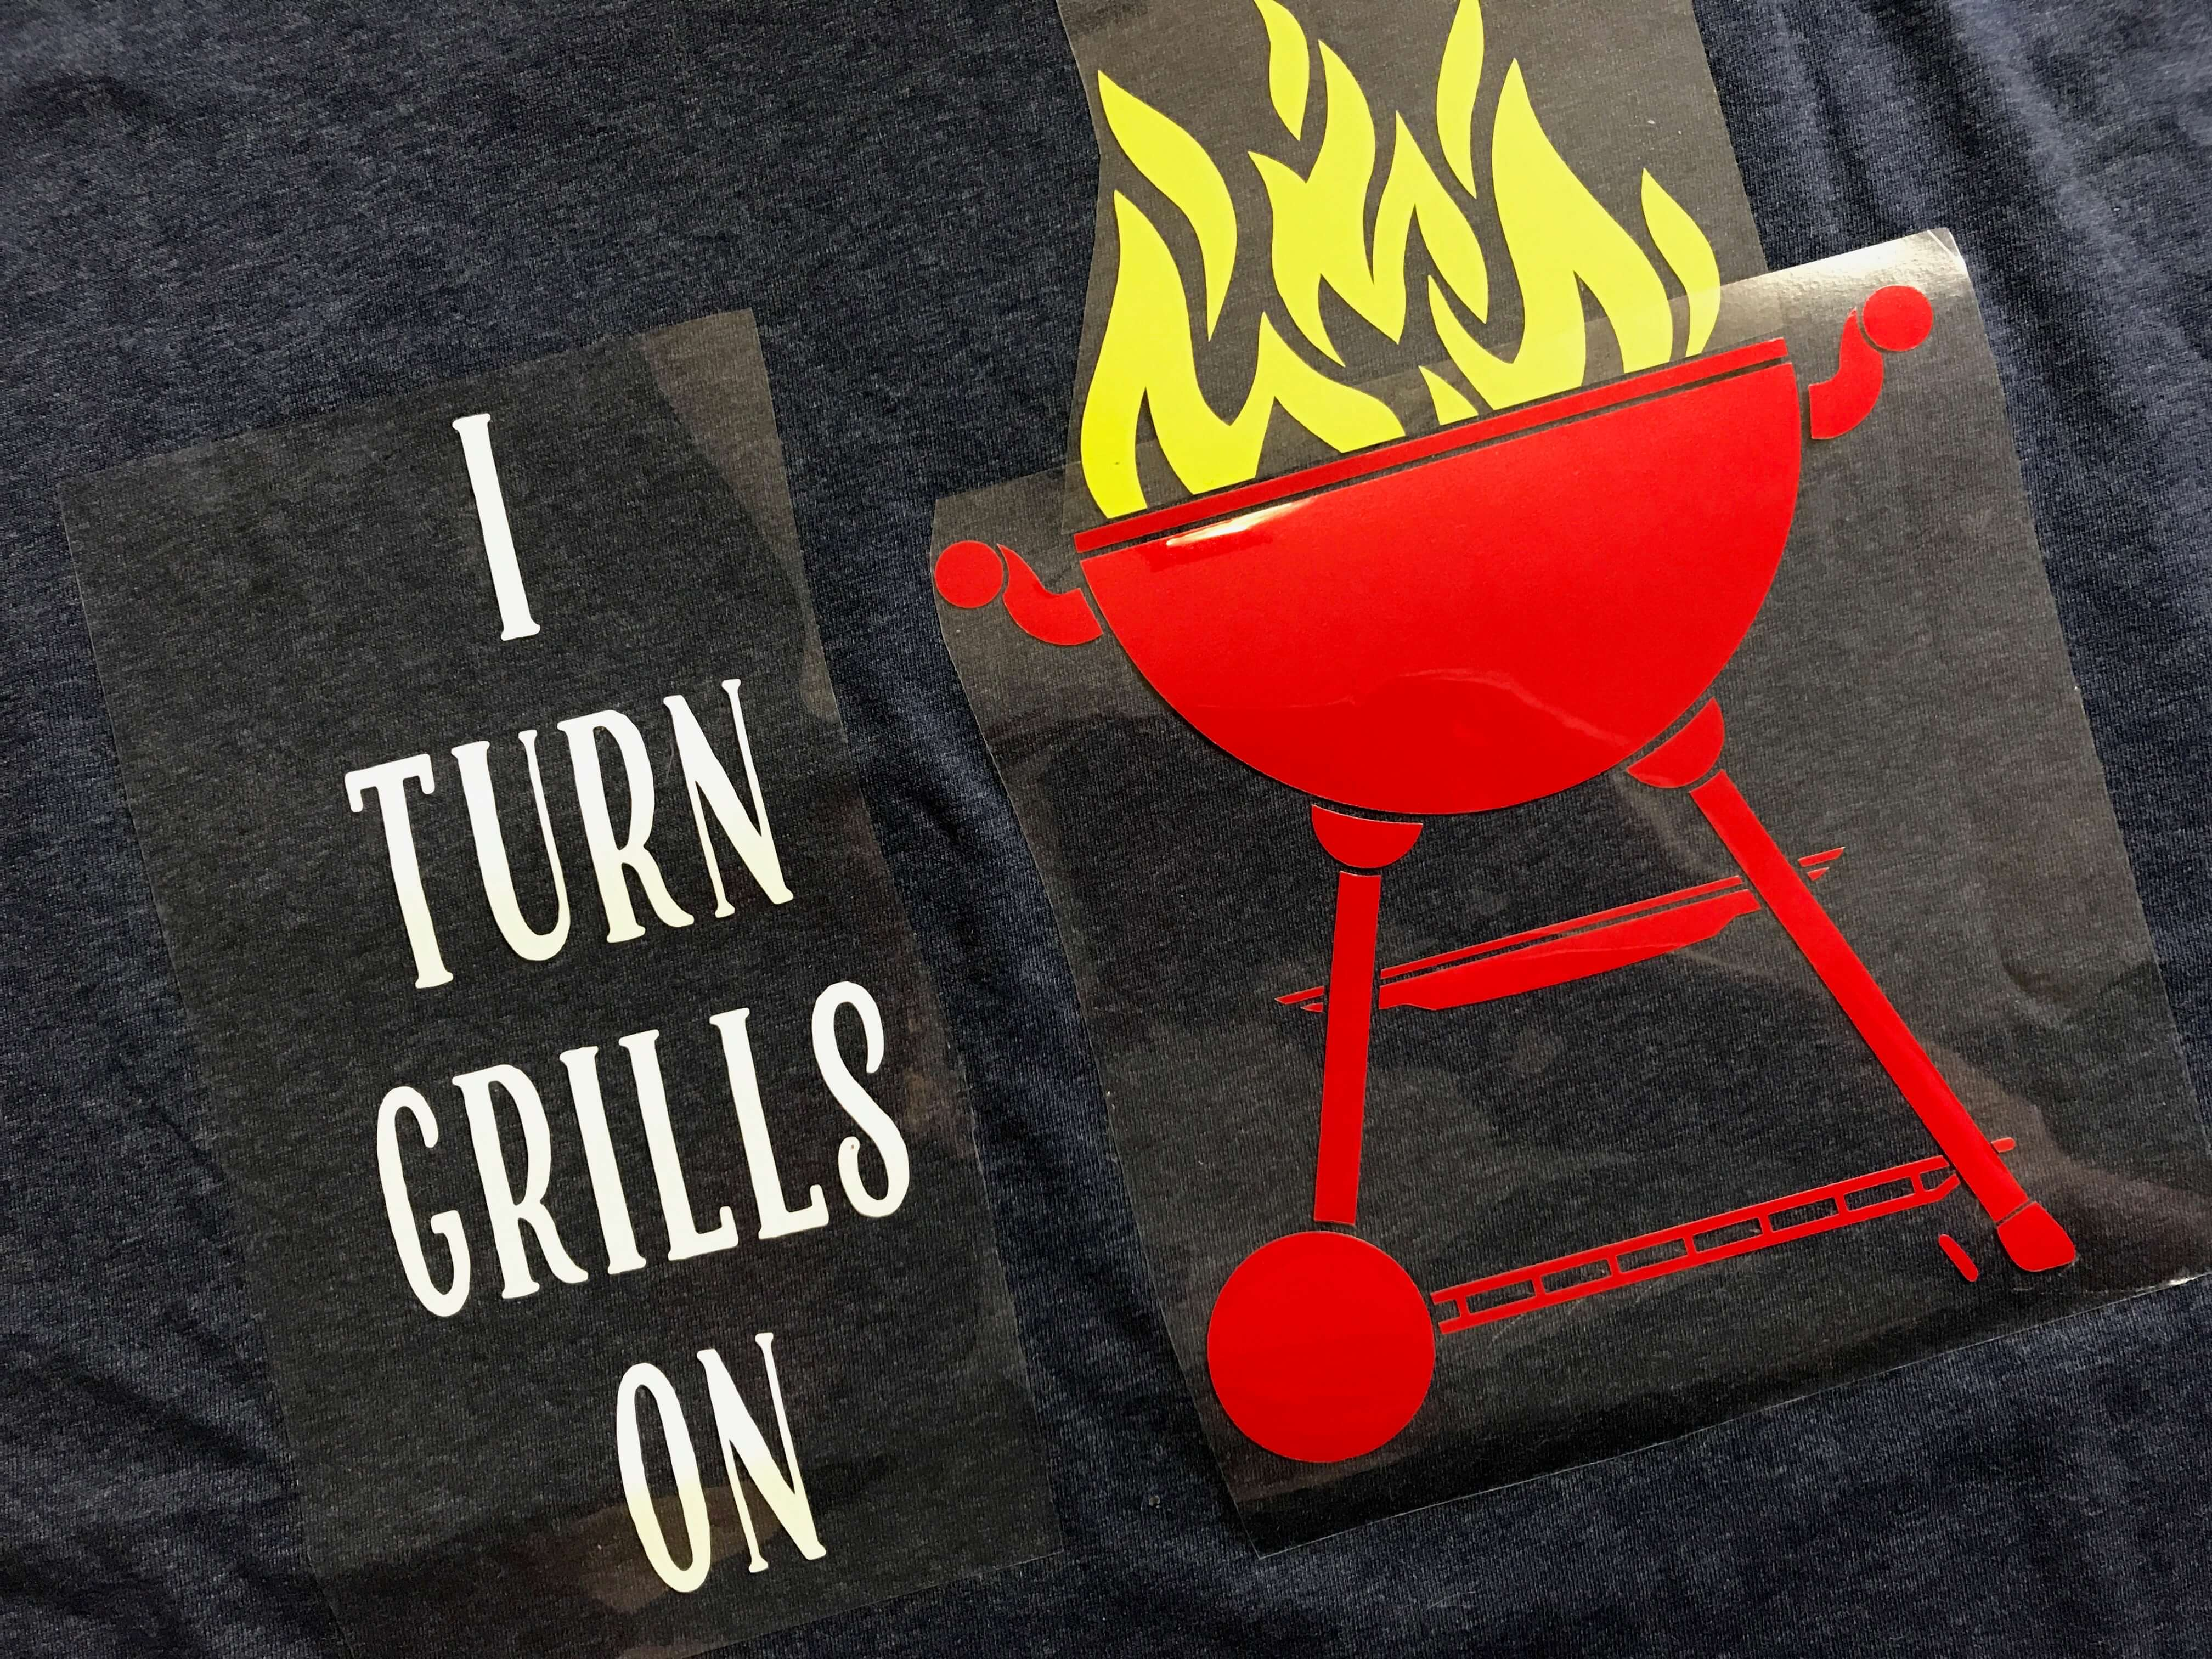 DIY, Father's Day, Funny Shirt, Cricut Made, Grills